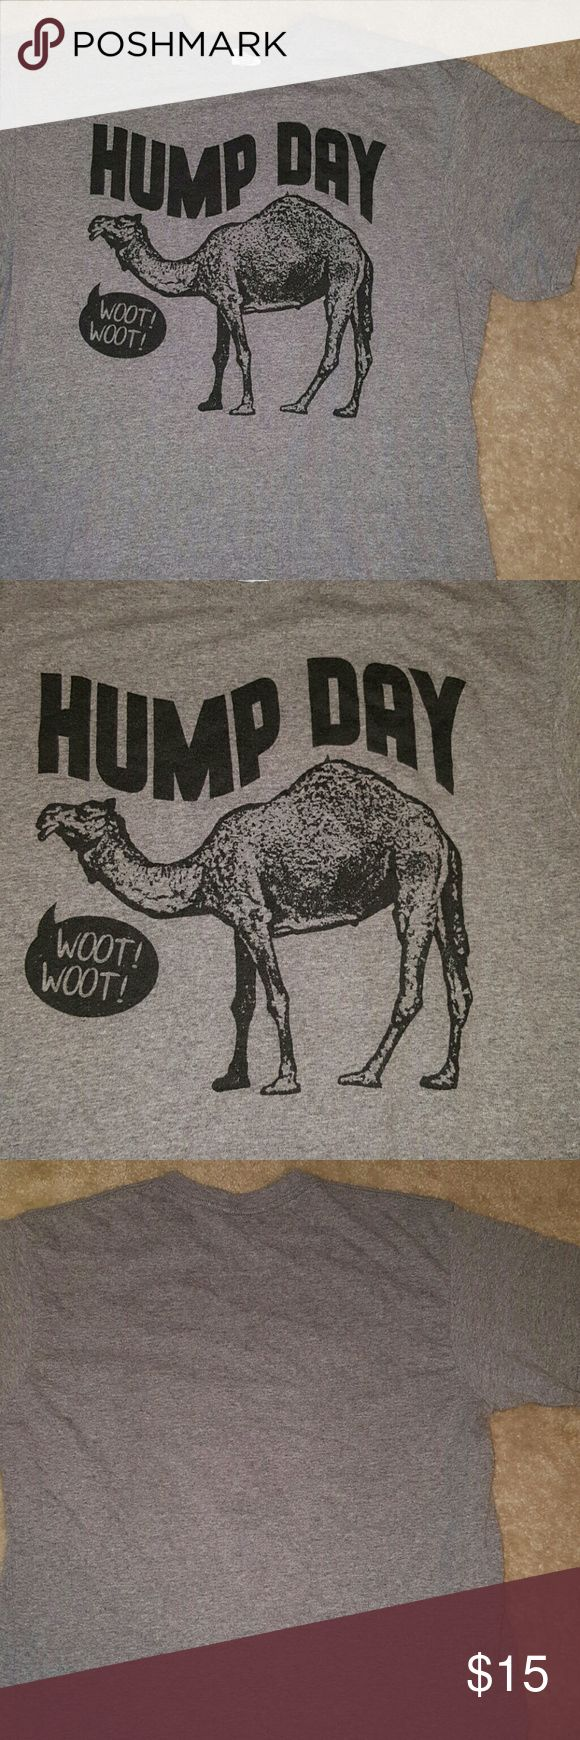 Hump Day shirt Who doesnt love Hump day? Now you can show your love  for it.  Very comfortable and shirt is in great condition.  70% preshunk cotton and 30% polyester . Comes from a smoke free home. Please feel free to ask any questions.Thank you. Delta Tops Tees - Short Sleeve